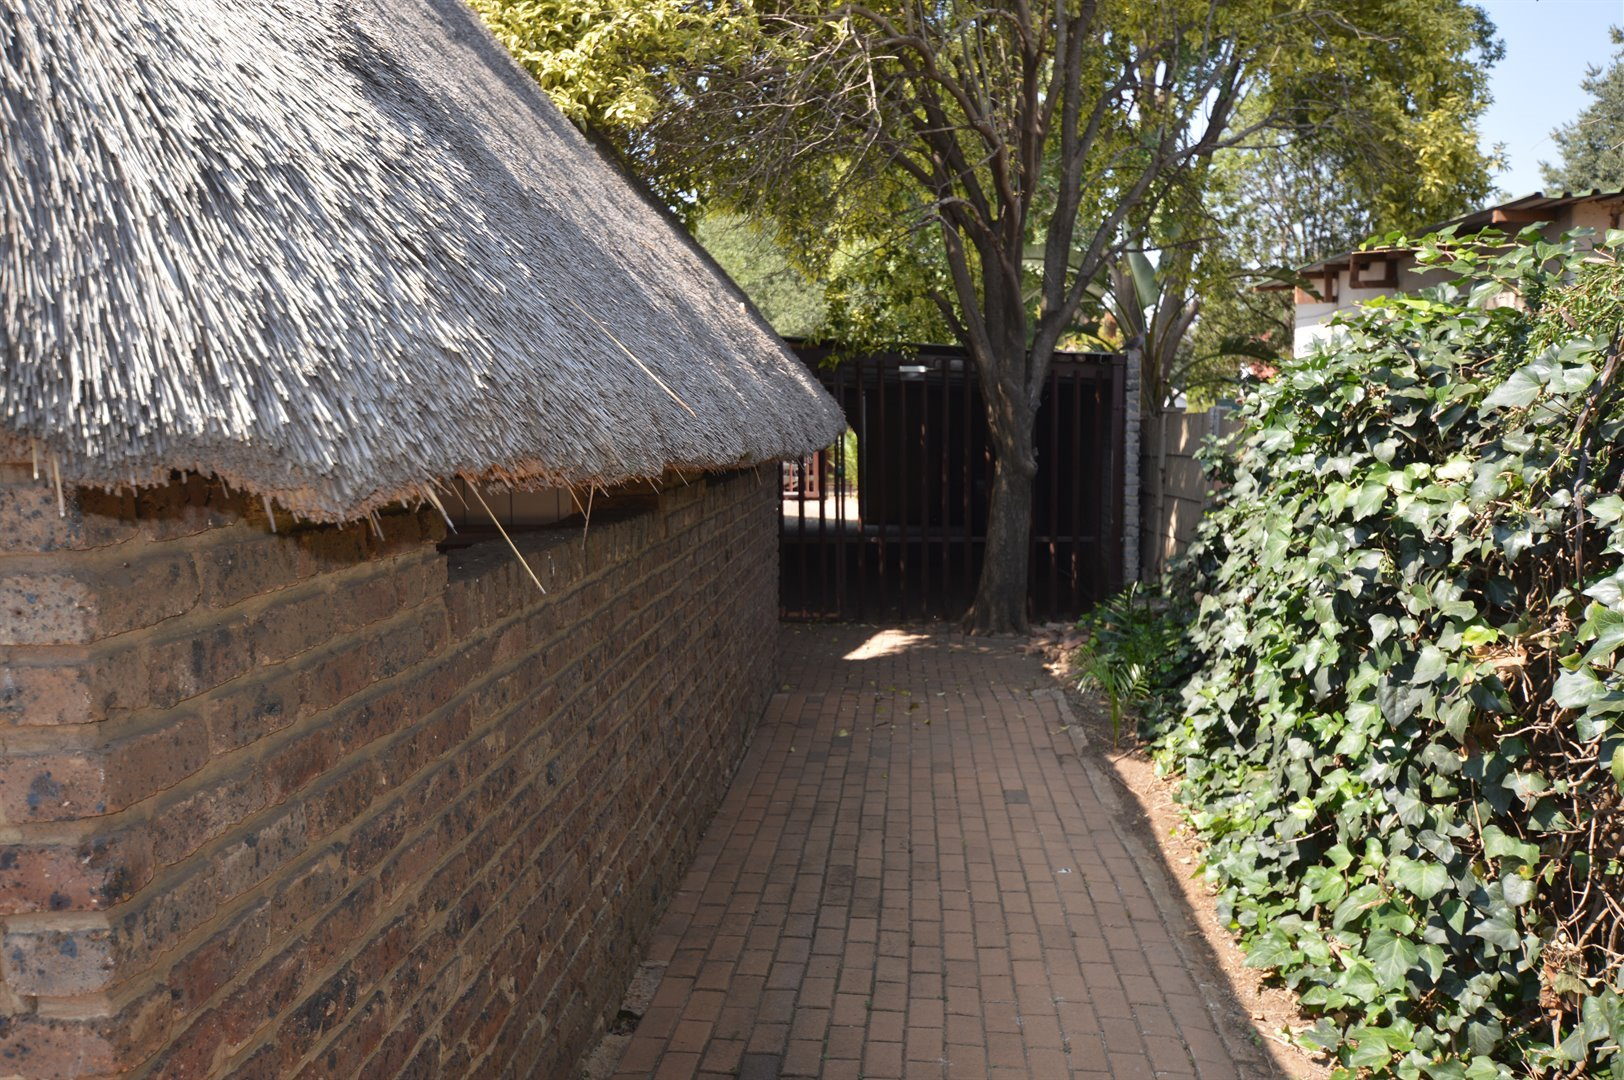 Vanderbijlpark Se 2 property for sale. Ref No: 13623209. Picture no 27